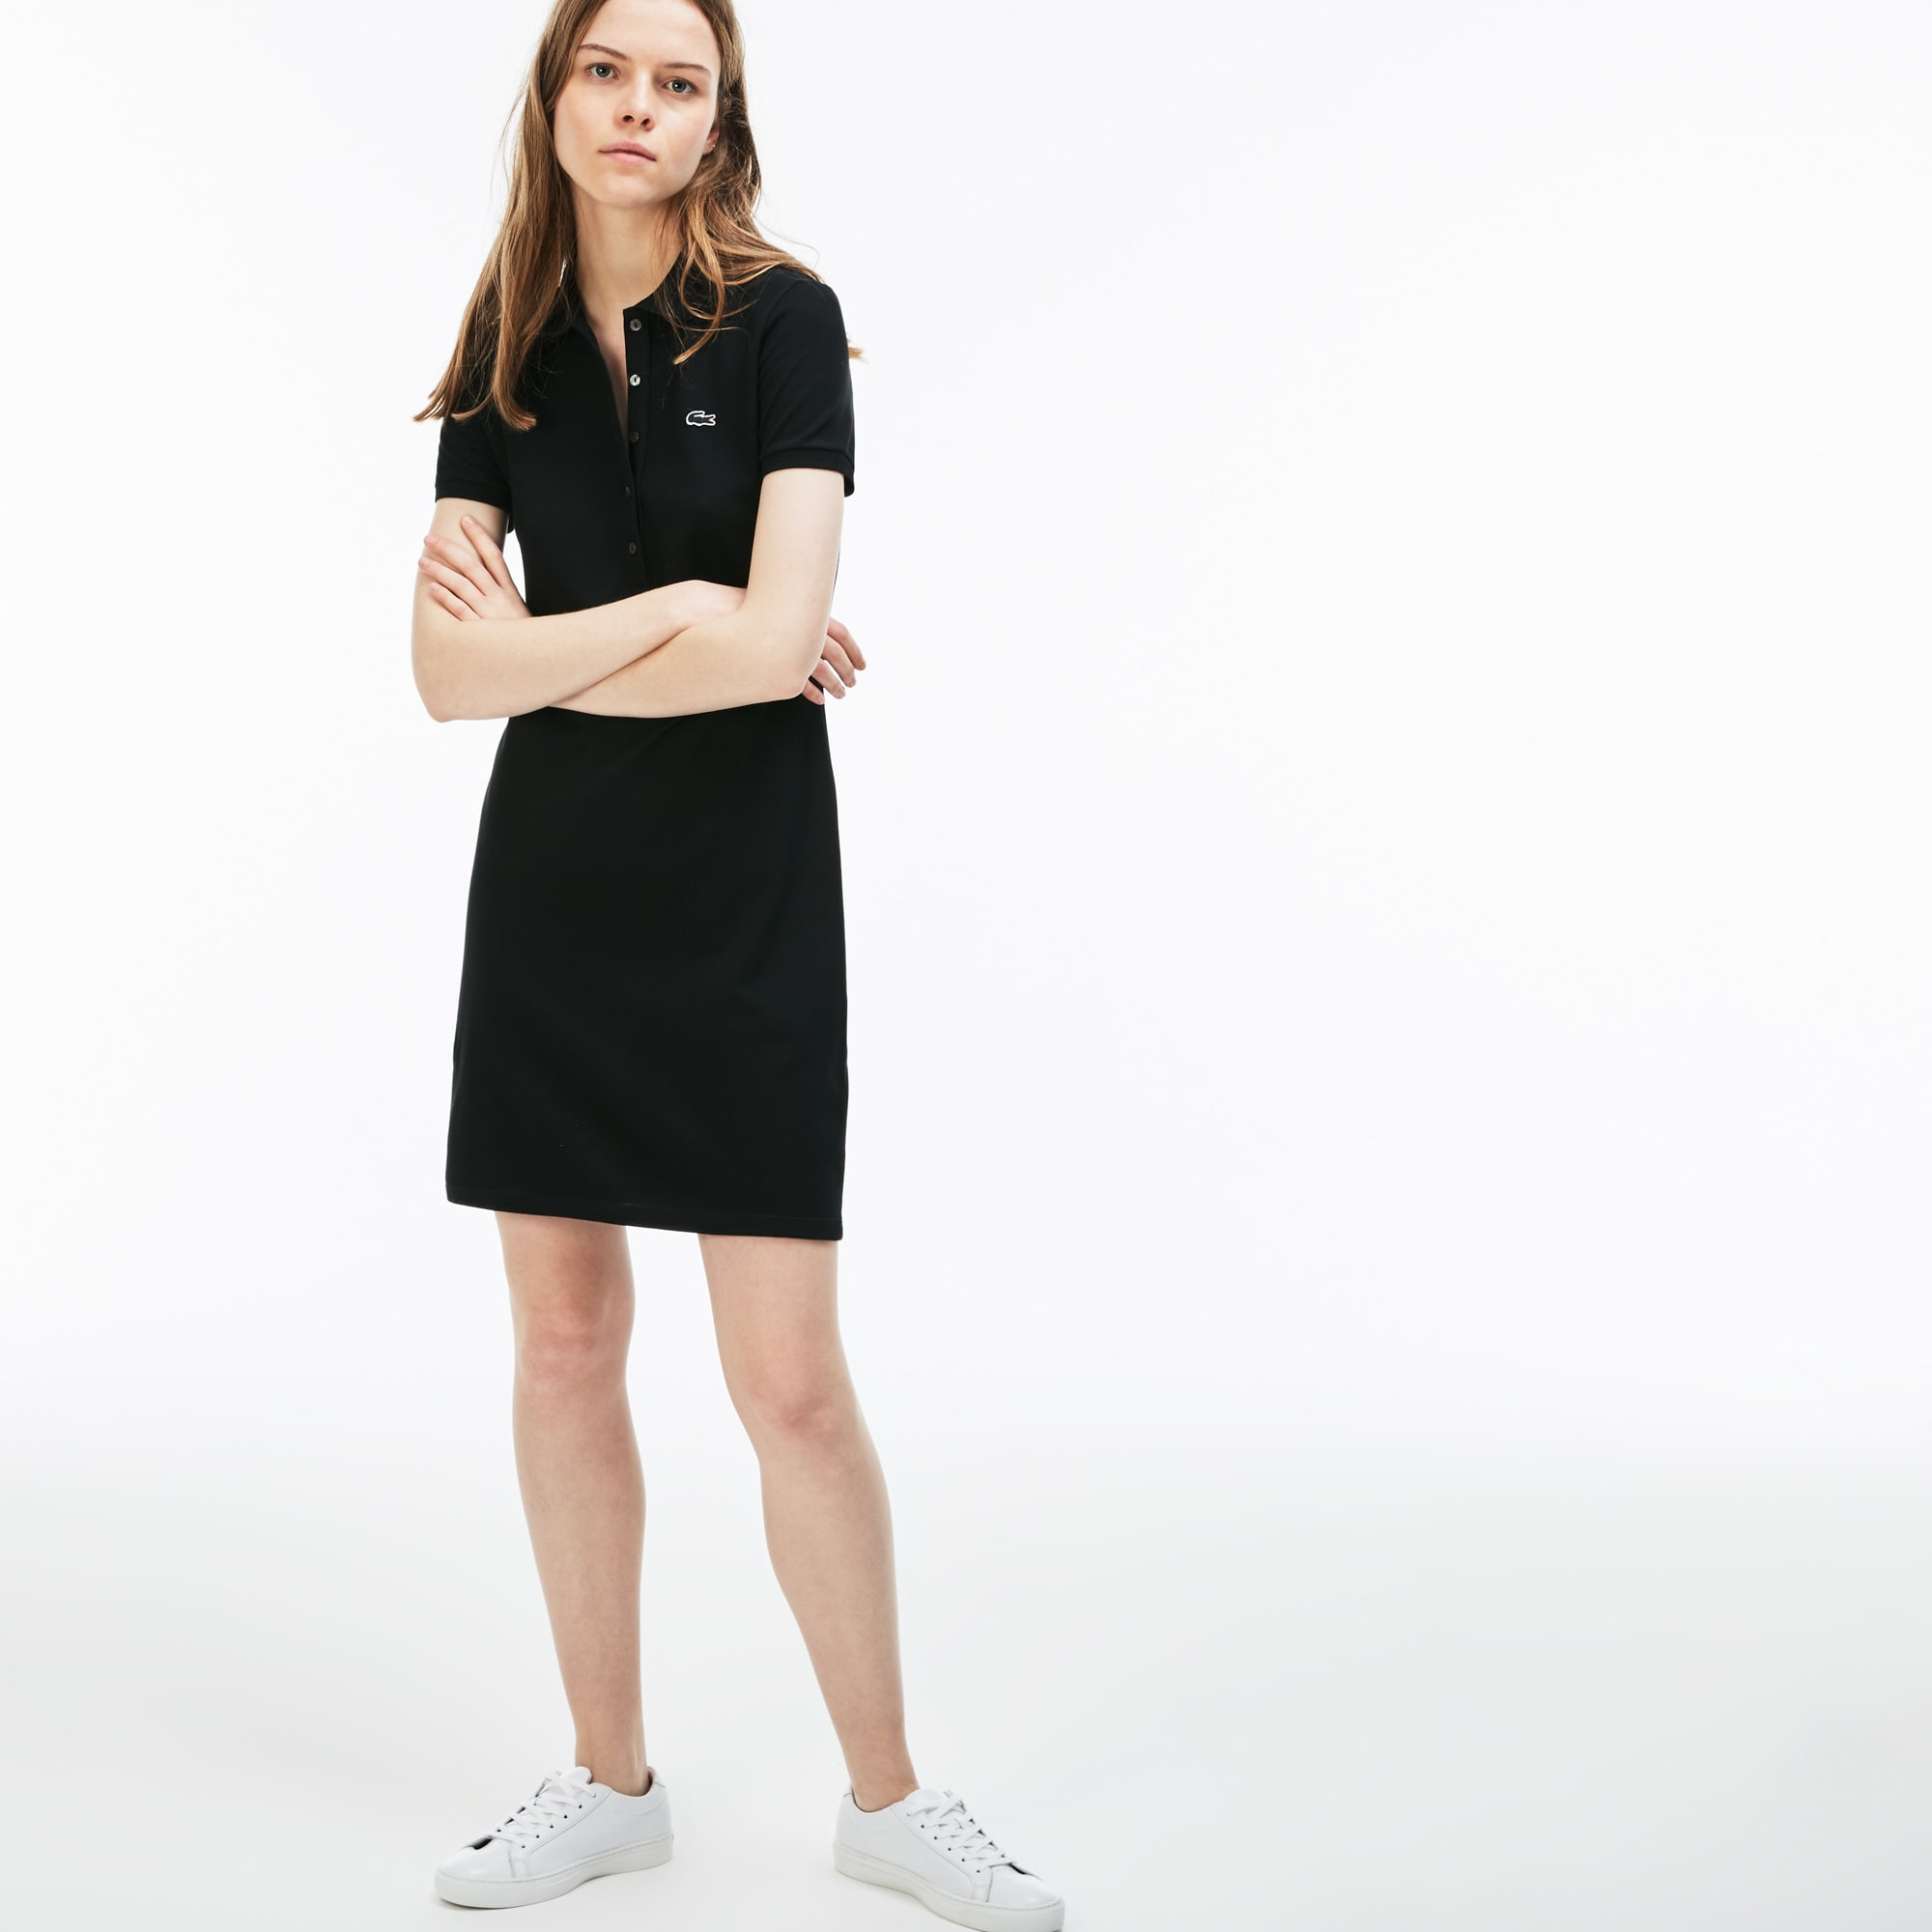 fee8f1a83 + 1 color + 4 colors. Women's Stretch Cotton Mini Piqué Polo Dress